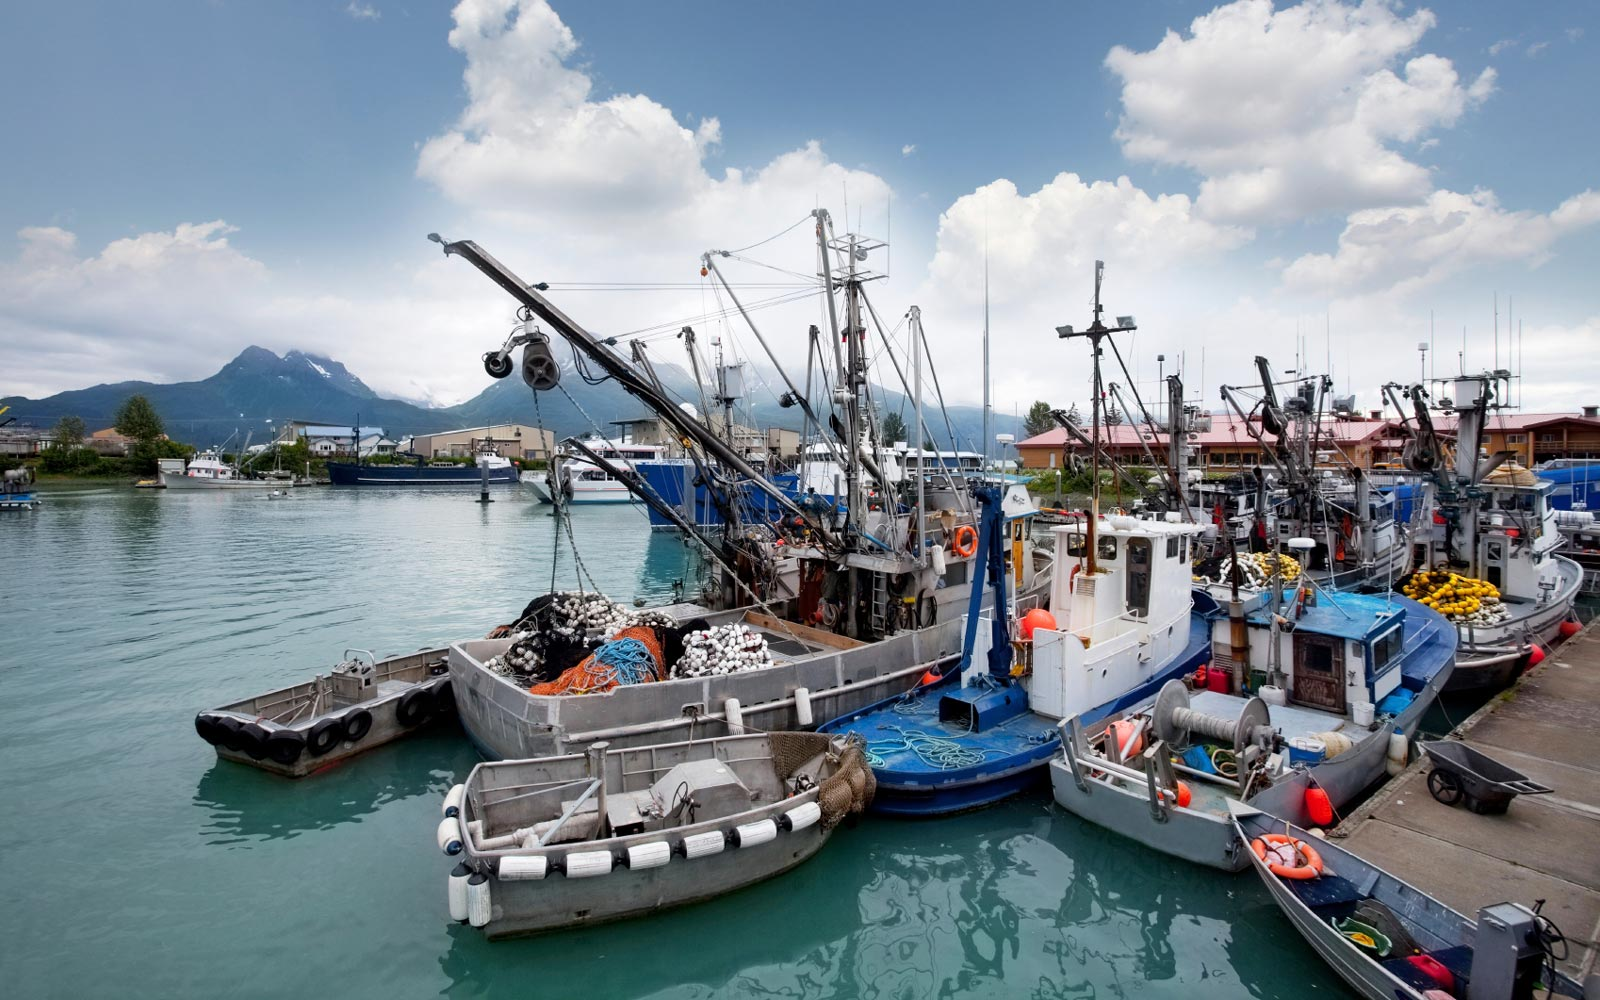 Commercial fishing boats moored in an Alaskan harbor